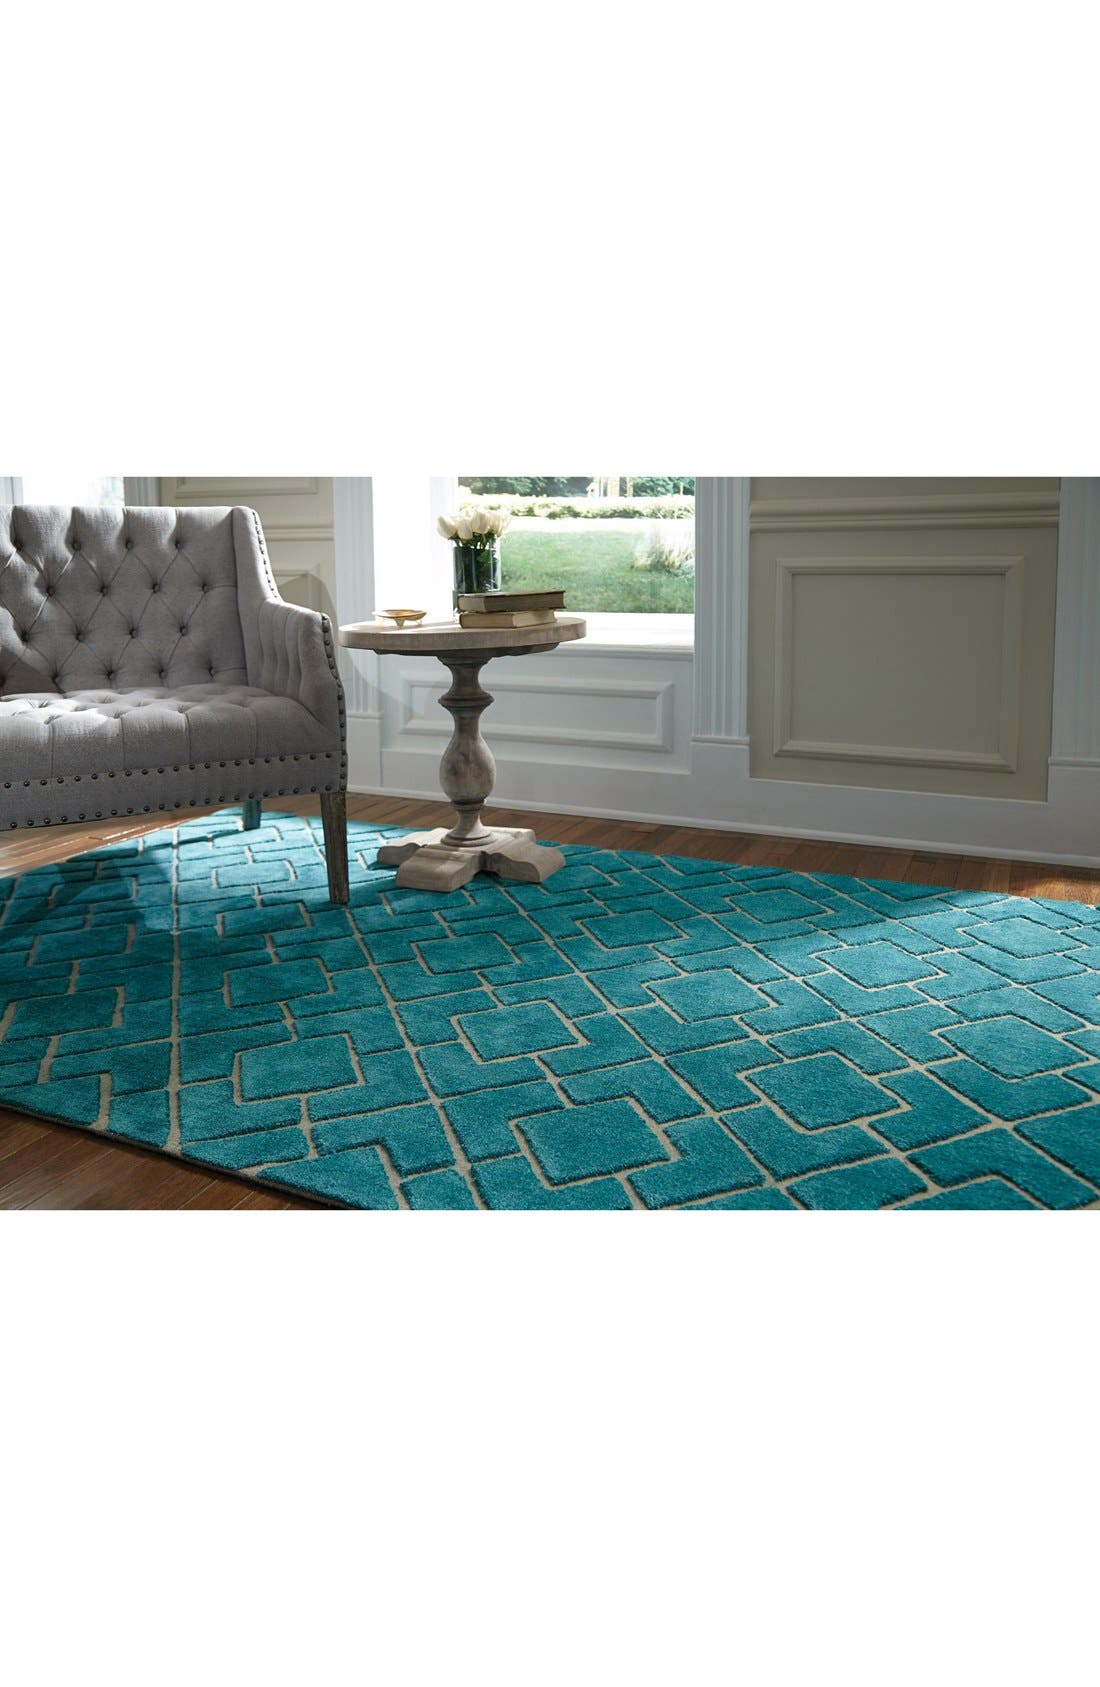 'Over Tufted - Turquoise' Rug,                             Alternate thumbnail 6, color,                             440